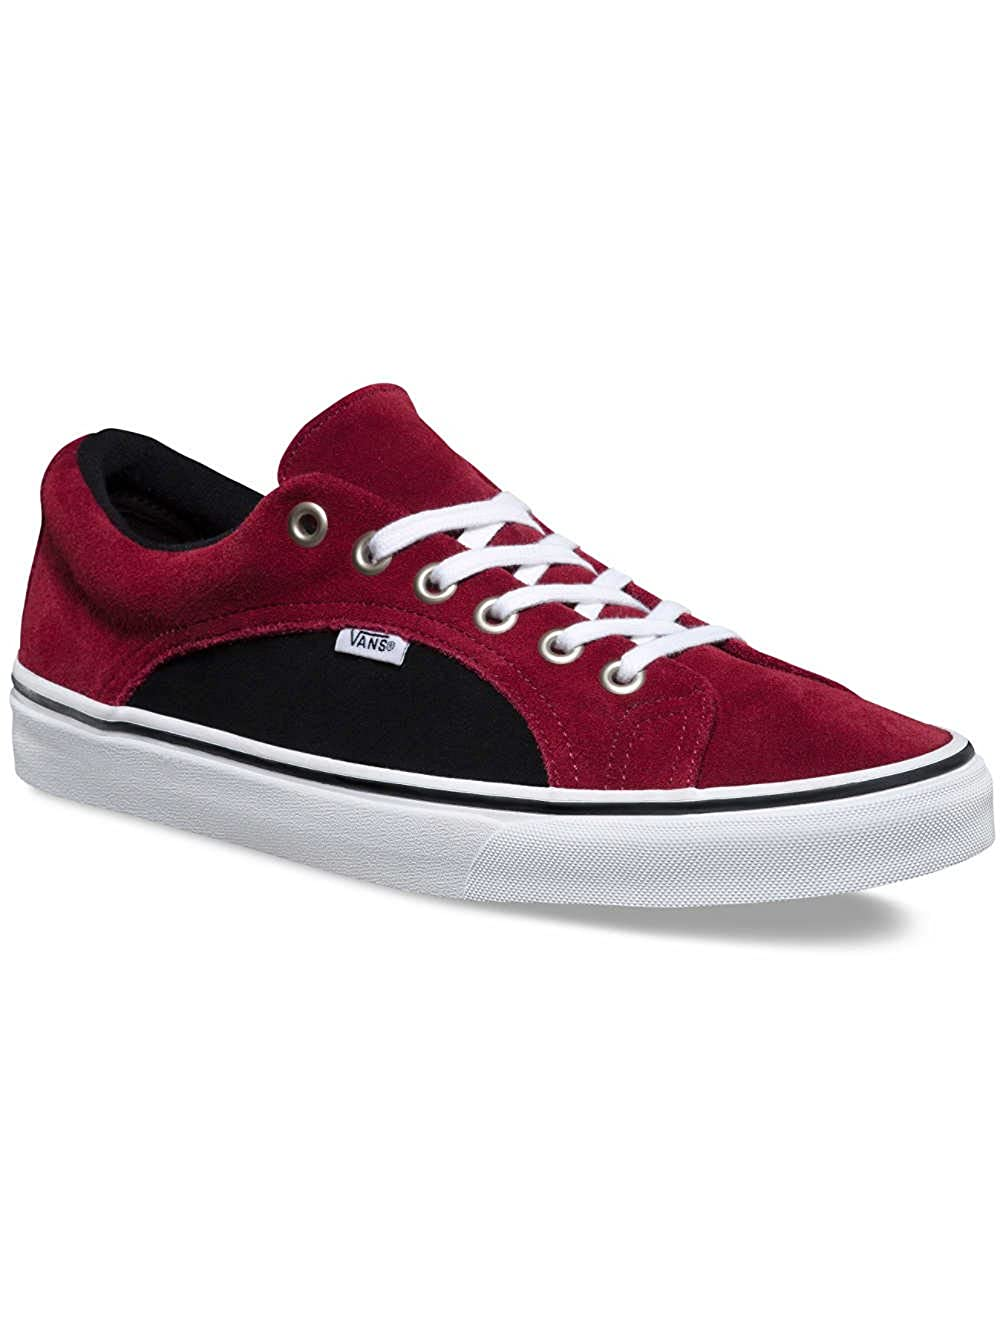 998164f79b9be Amazon.com | Vans Lampin Mens 11.5 Two Tone Suede Port Royale Red ...